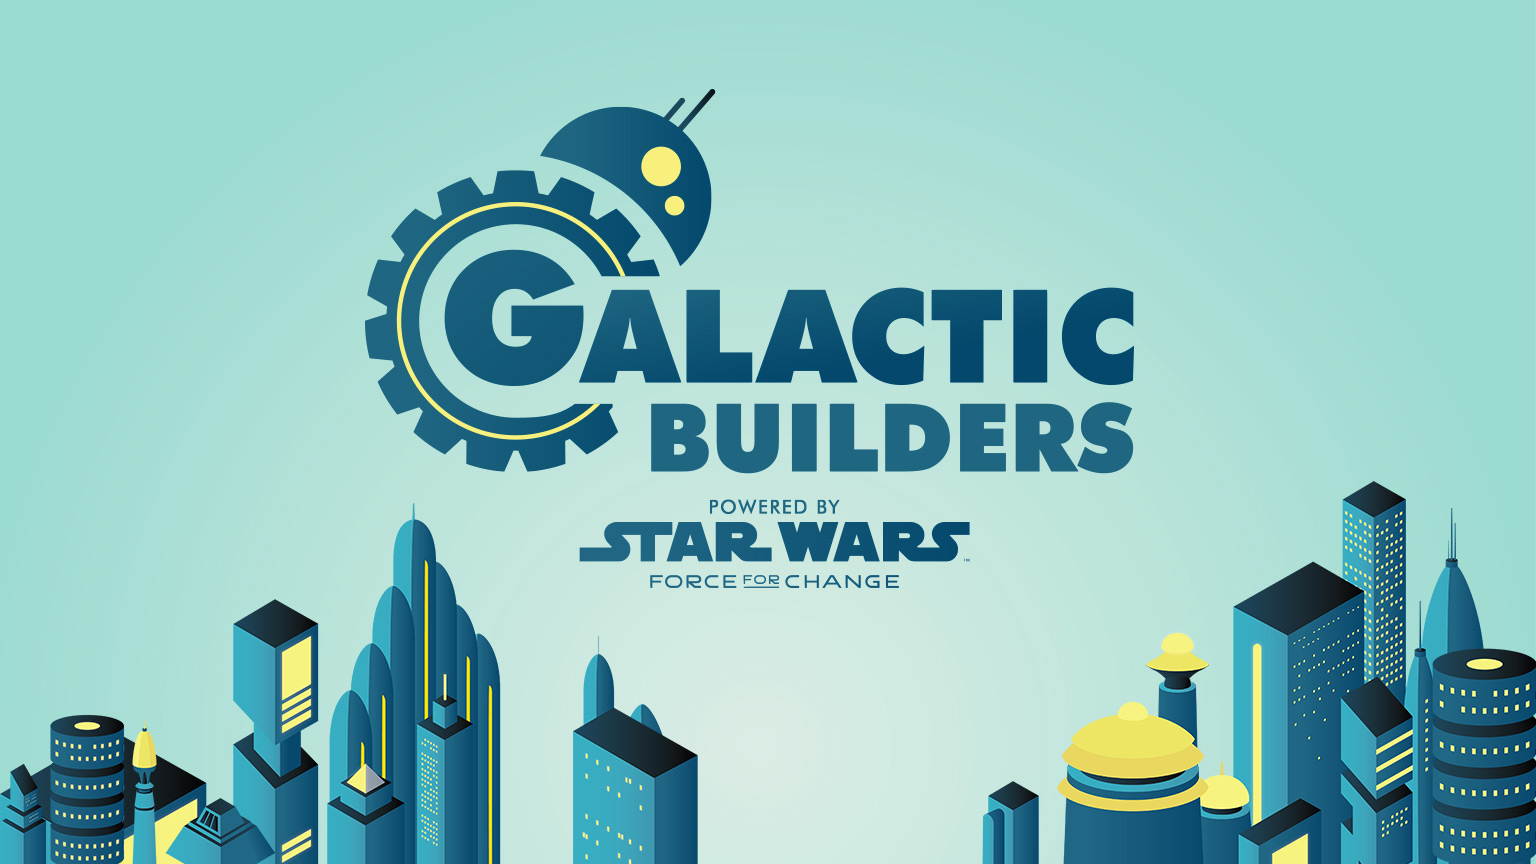 Star Wars Galactic Builders